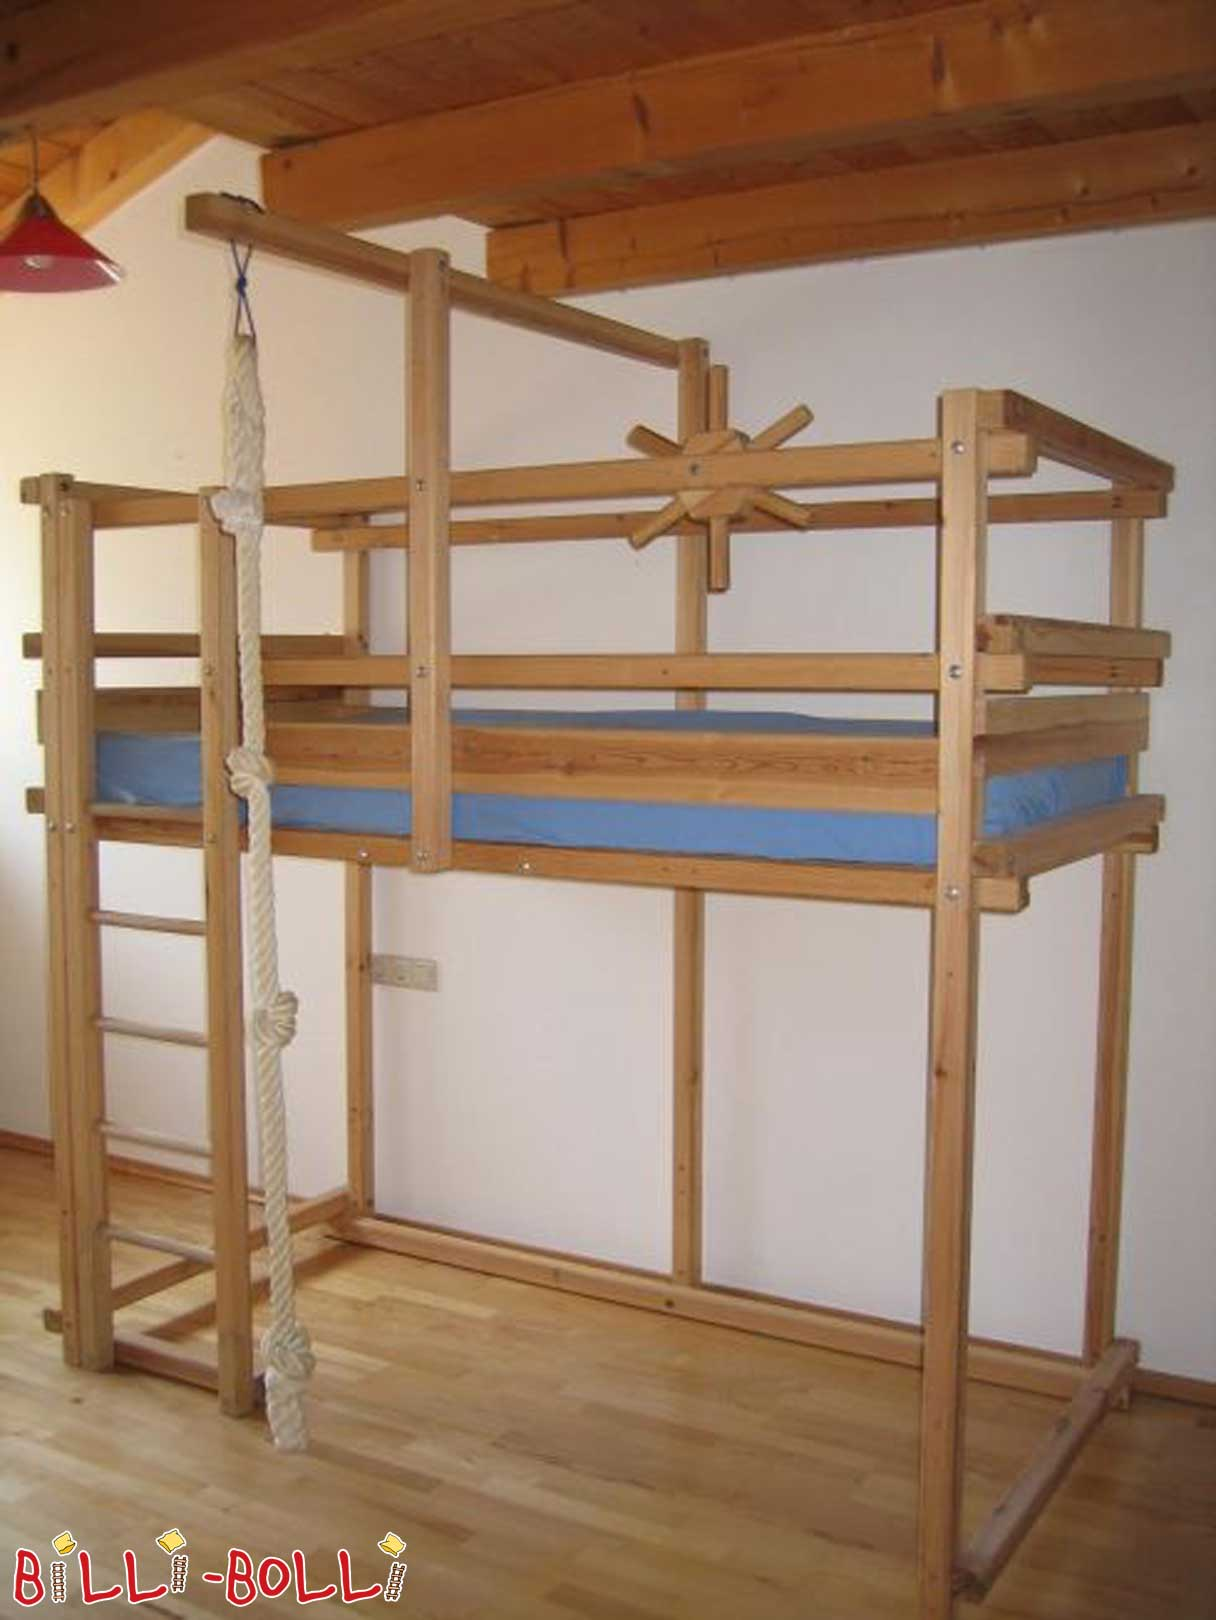 Gullibo Pirate HighBed, Pirate Bed (second hand loft bed)